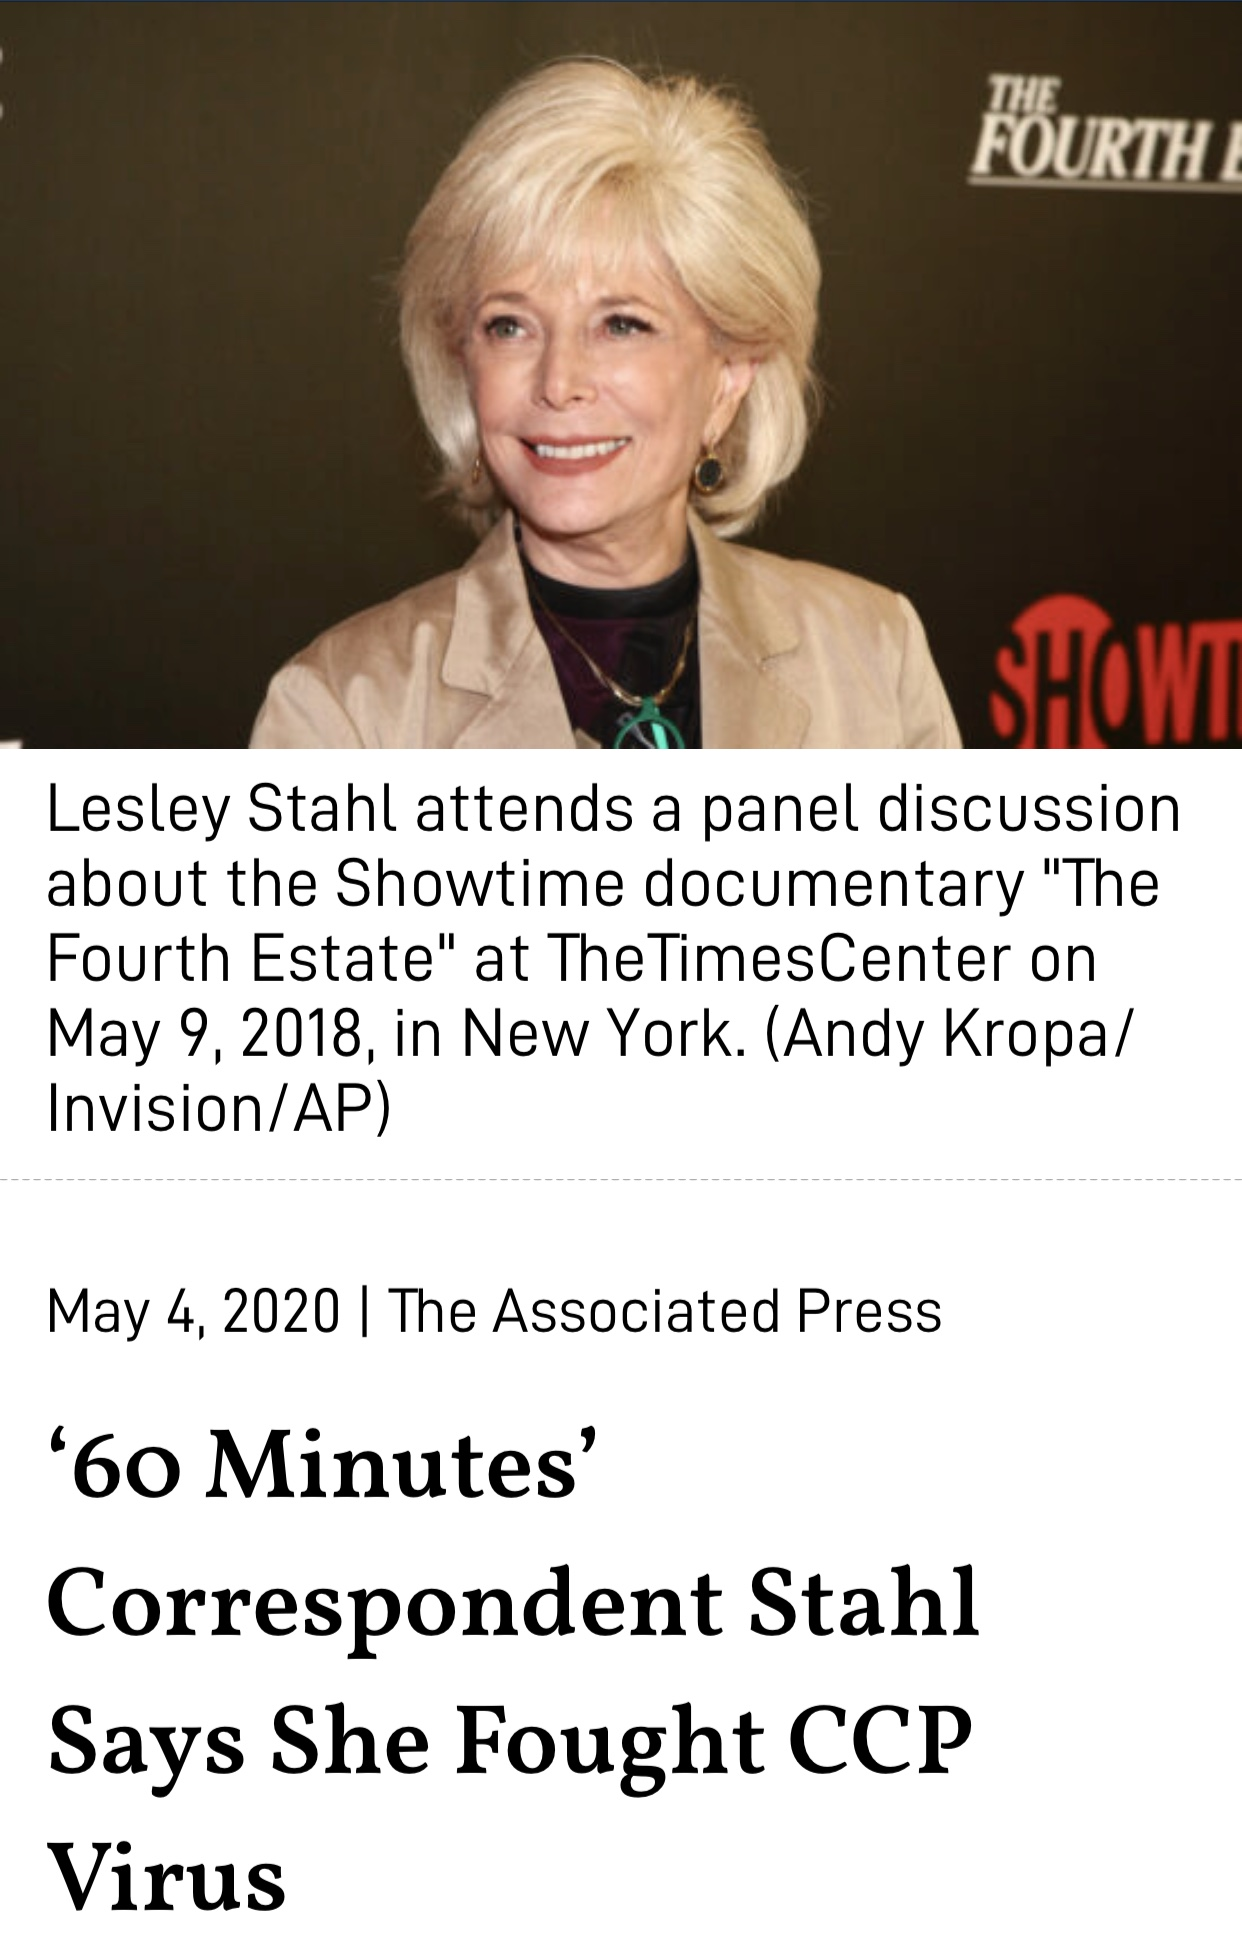 '60 Minutes' Correspondent Lesley Stahl Says She Fought CCP Virus